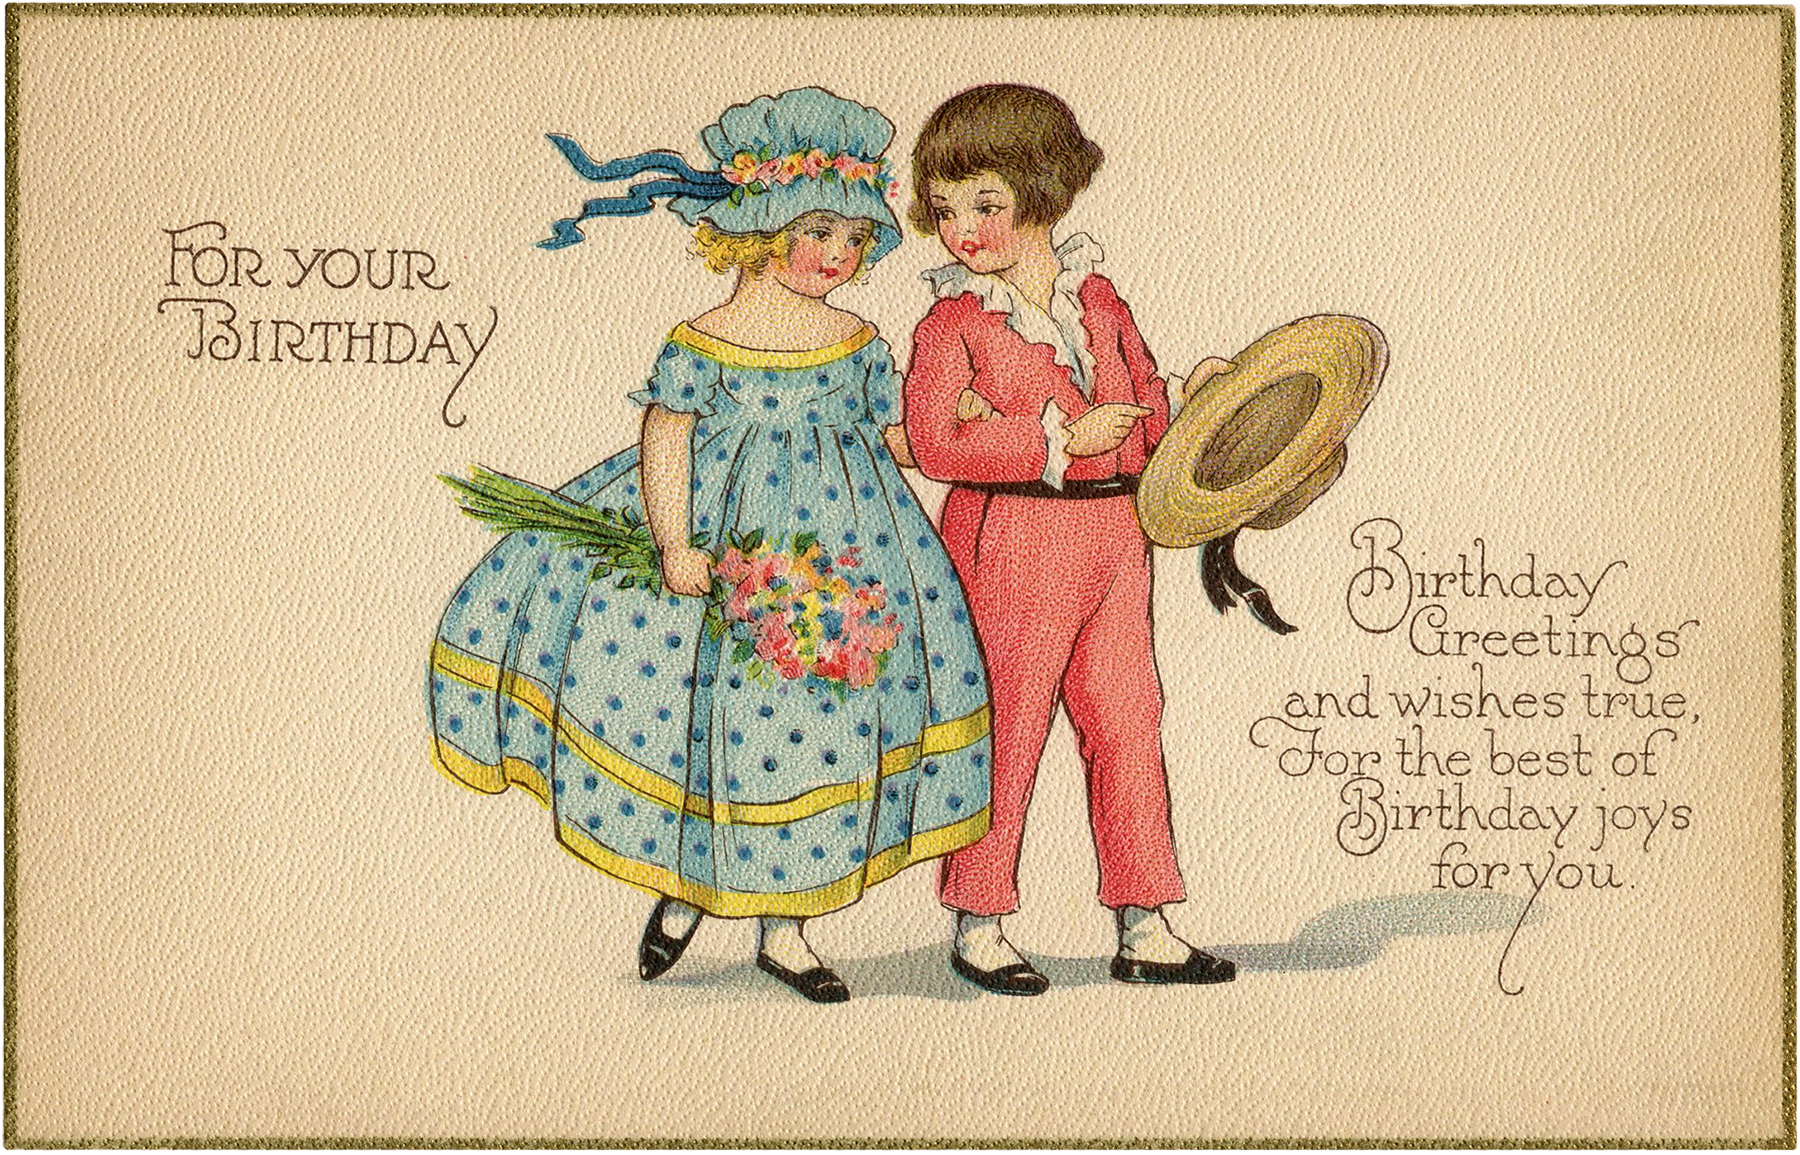 Vintage Birthday Card Image